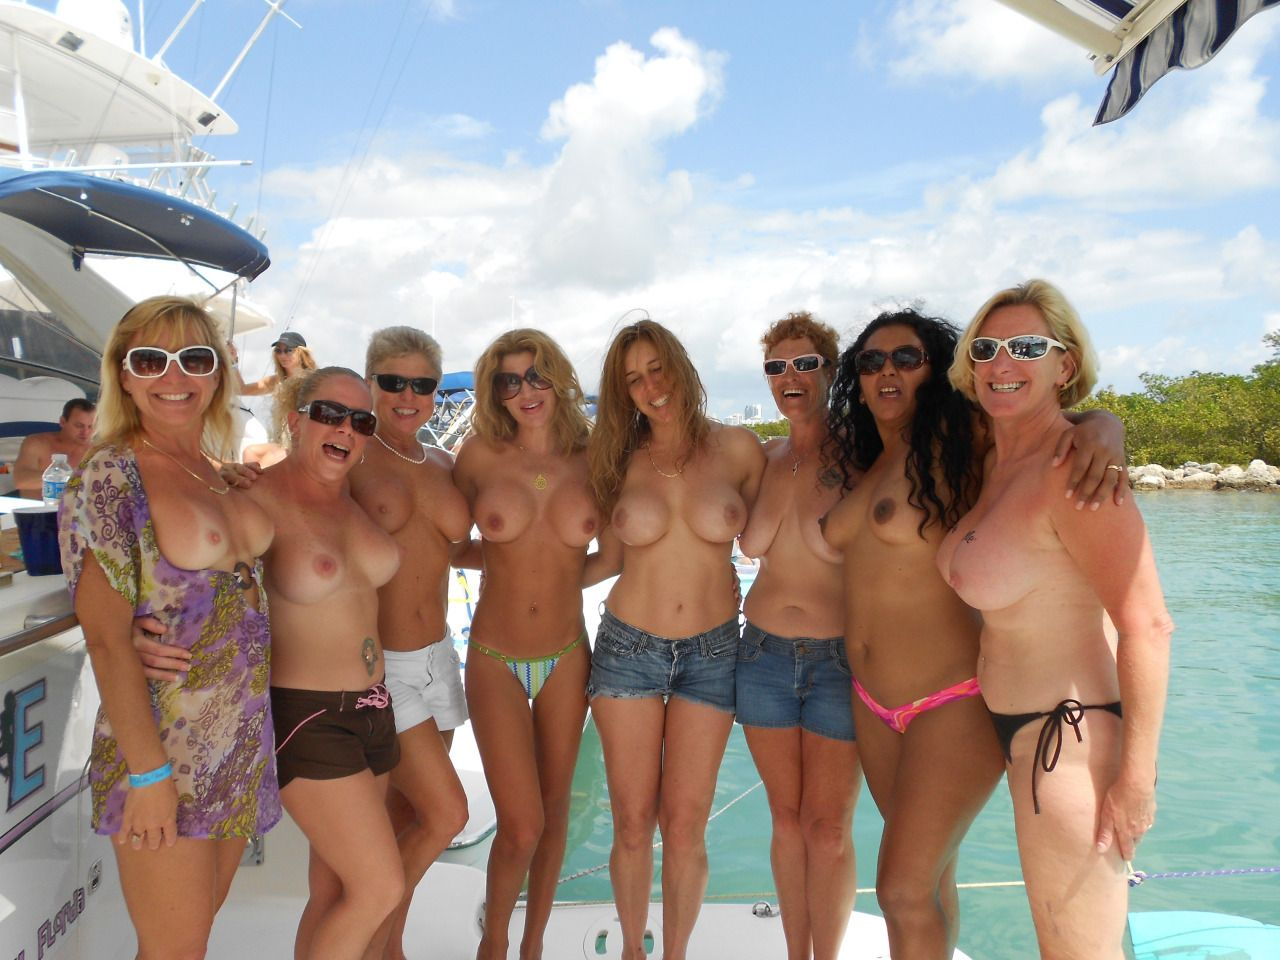 [Amateur MILF] Group of Cougars